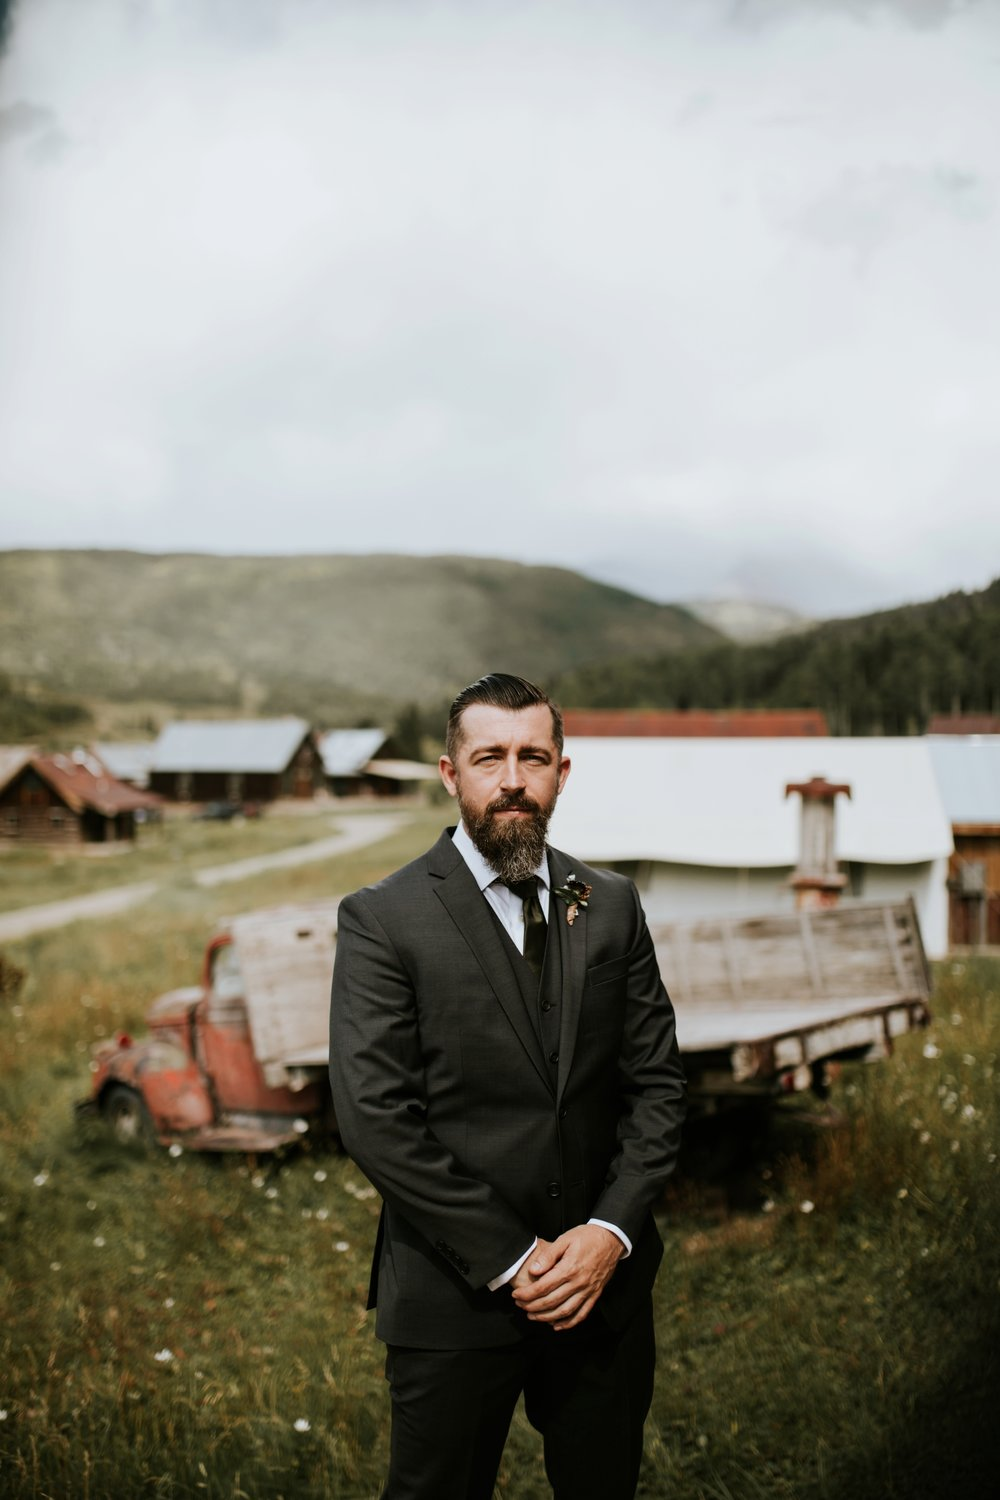 dunton-hot-springs-elopement-_0005.jpg